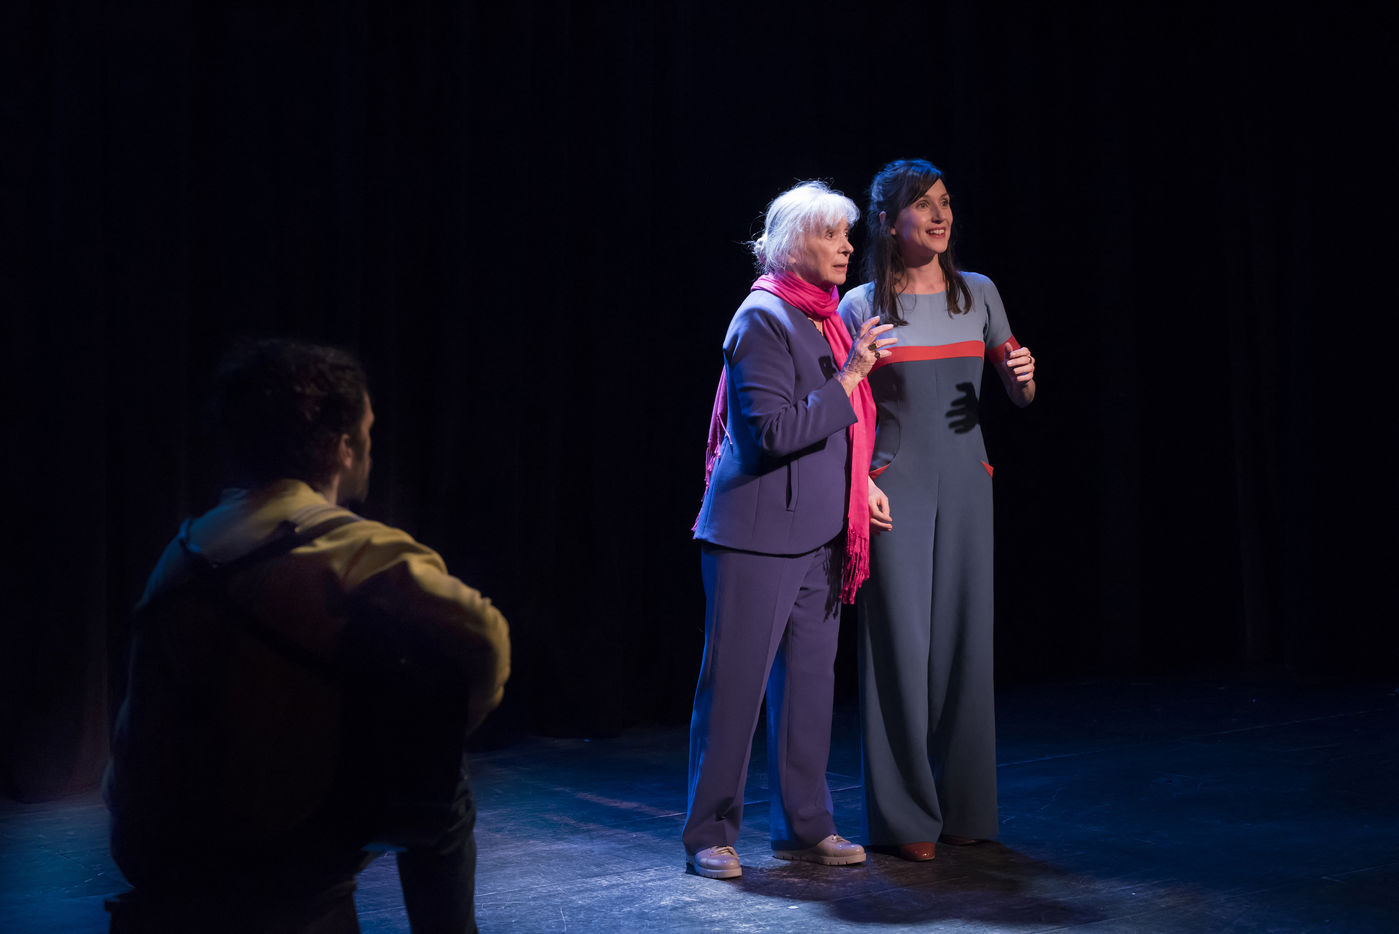 A scene of SAVANNAH BAY written by Marguerite Duras, directed by Christophe Thiry with Michele Simonnet, Anne Freches and Ronan Richard-Kobel in Paris at the Theatre du Lucernaire on january 29, 2019. Une scene de SAVANNAH BAY texte de Marguerite Duras, mise en scene de Christophe Thiry avec Michele Simonnet, Anne Freches et Ronan Richard-Kobel a Paris au Theatre du Lucernaire le 29 janvier 2019.